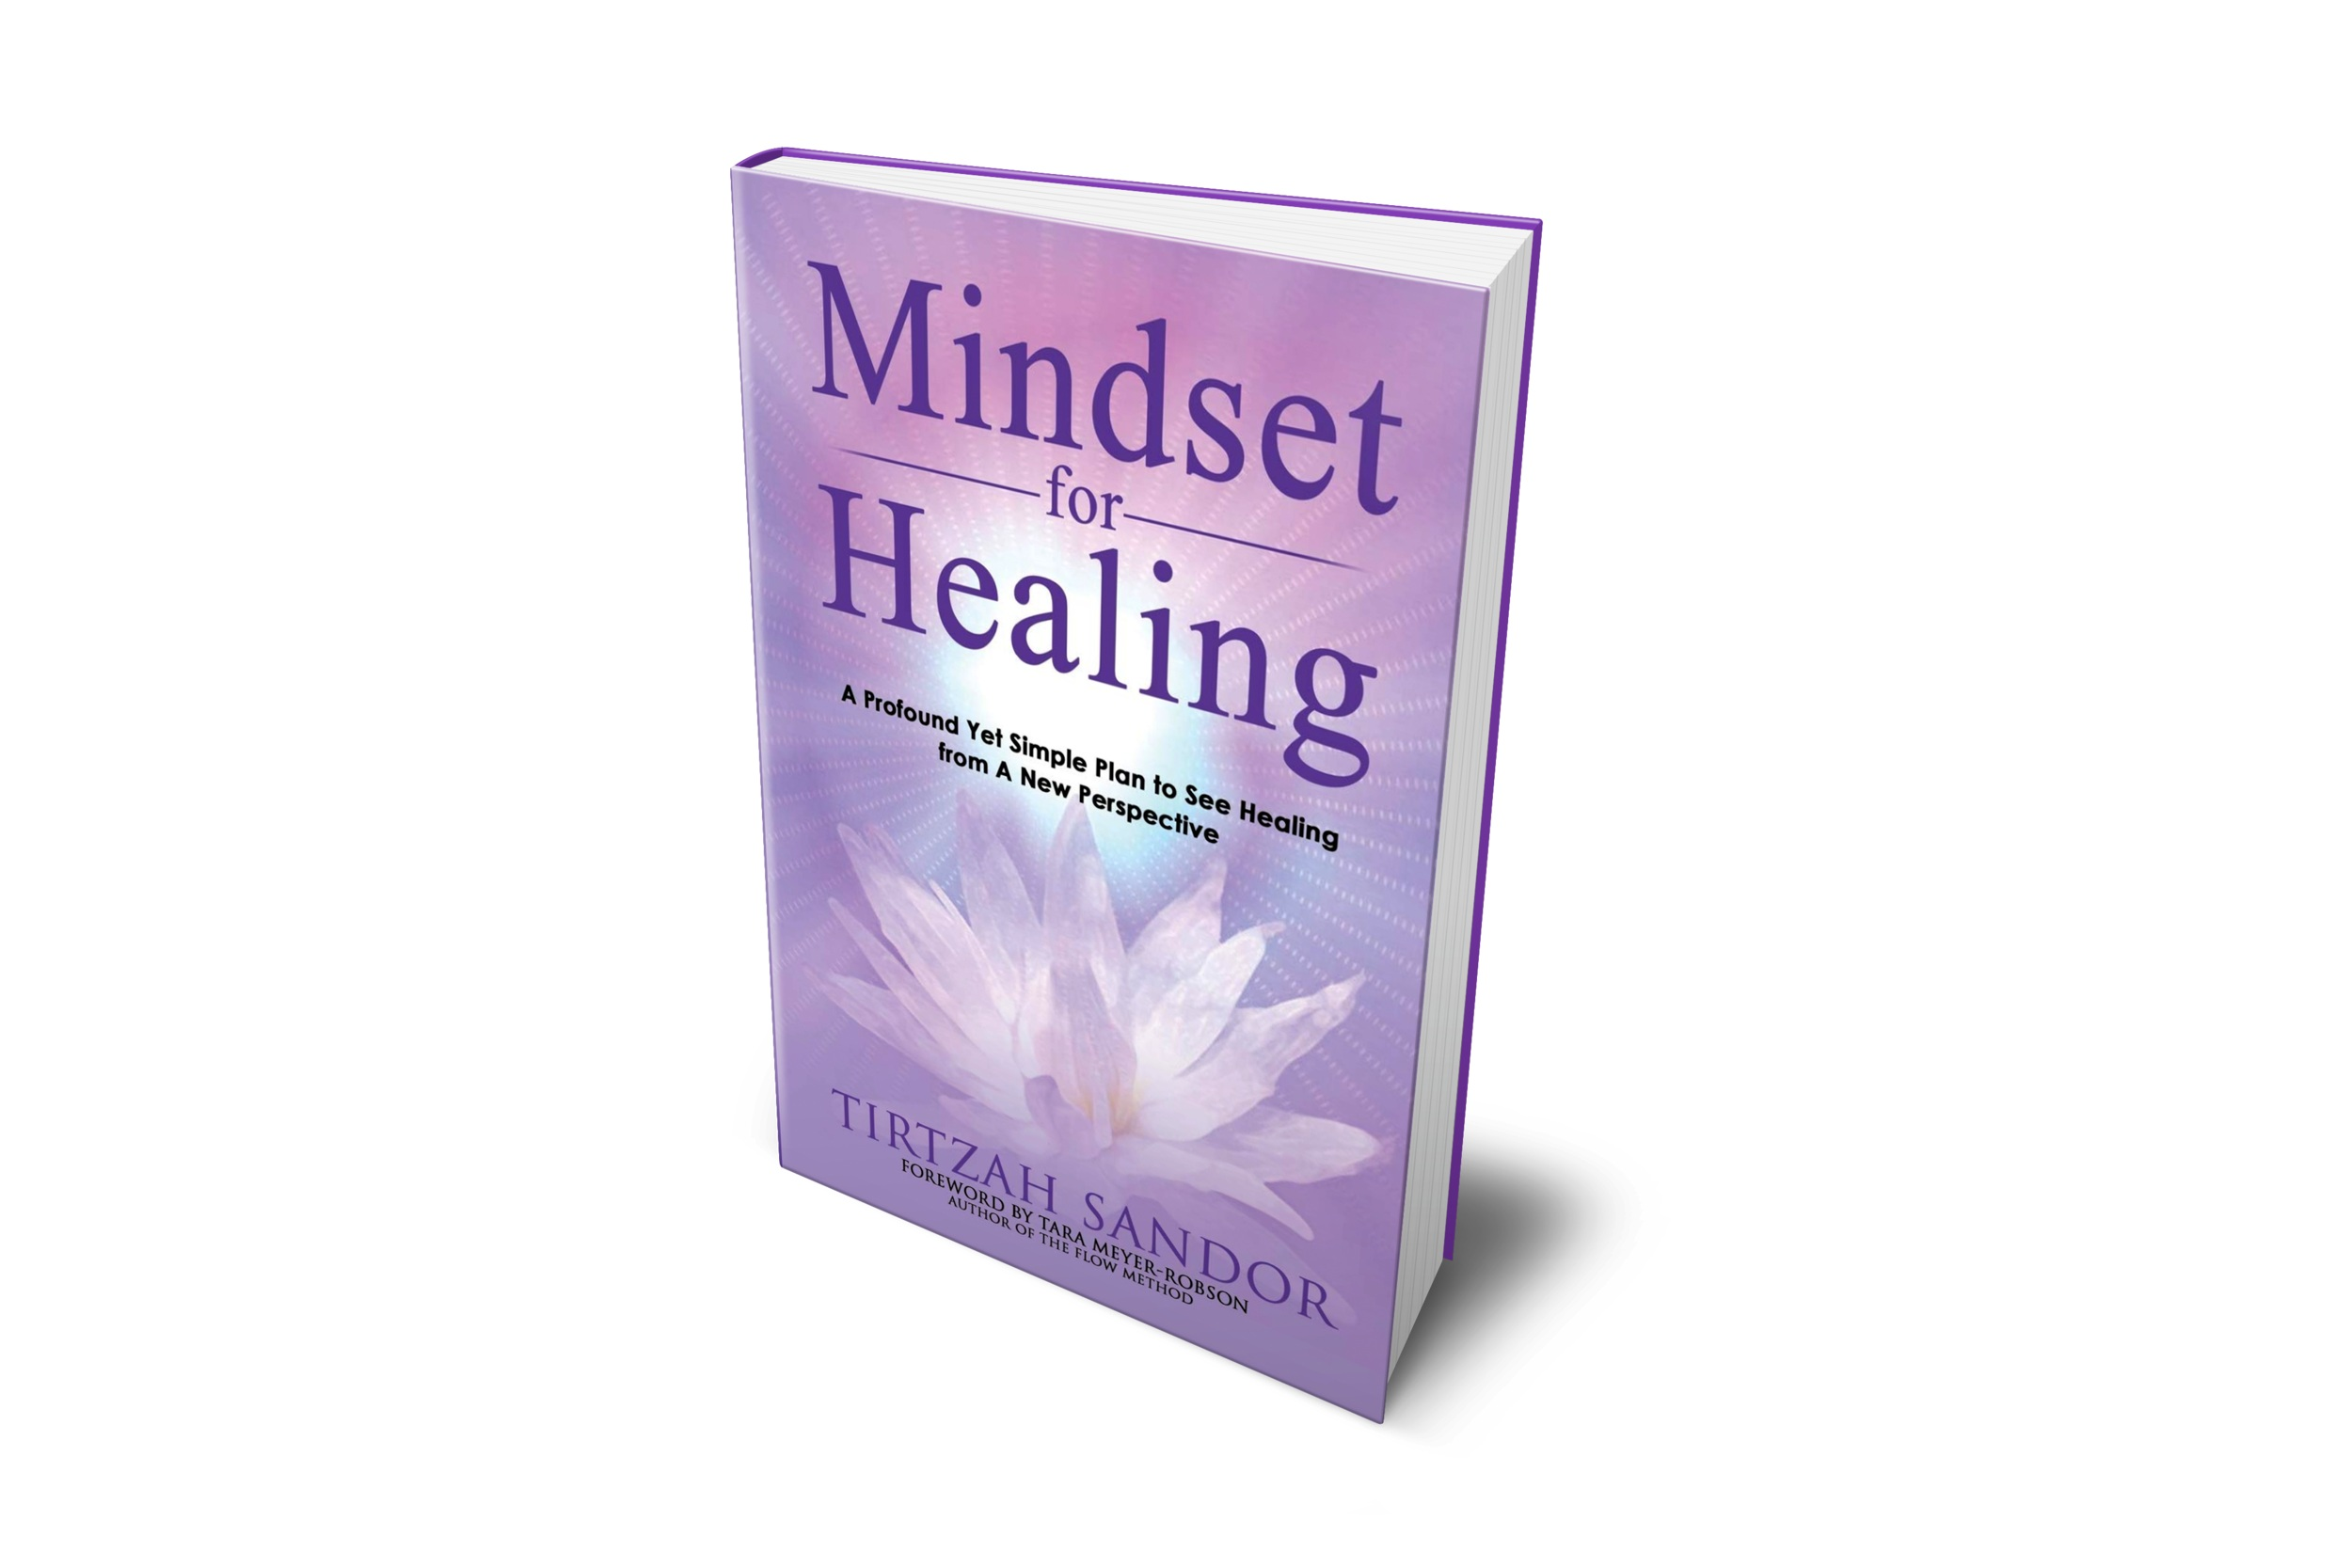 Mindset for Healing - A Profound Yet Simple Plan to See Healing from A New PerspectiveAre you ready to move forward in your healing journey? This book is a 10 step process that will do just that for you. The book is set up as an easy read so you can read it while in the middle of any healing journey. It will walk you step by step from confusion to focus. Find out more: by Clicking on the book to order a paperback copy or e-book through Amazon.com. or contact me to purchase a paperback copy.PLEASE VOTE: My book is a finalist for the Authors Academy.  You can vote at https://authoracademyawards.com/ - Click on the Vote Now for 2019 button, on the top of the list you will see an arrow for 1-16, go to page 7 to Vote for Your Favorite Health Books - My book is the 32nd book. Thanks!